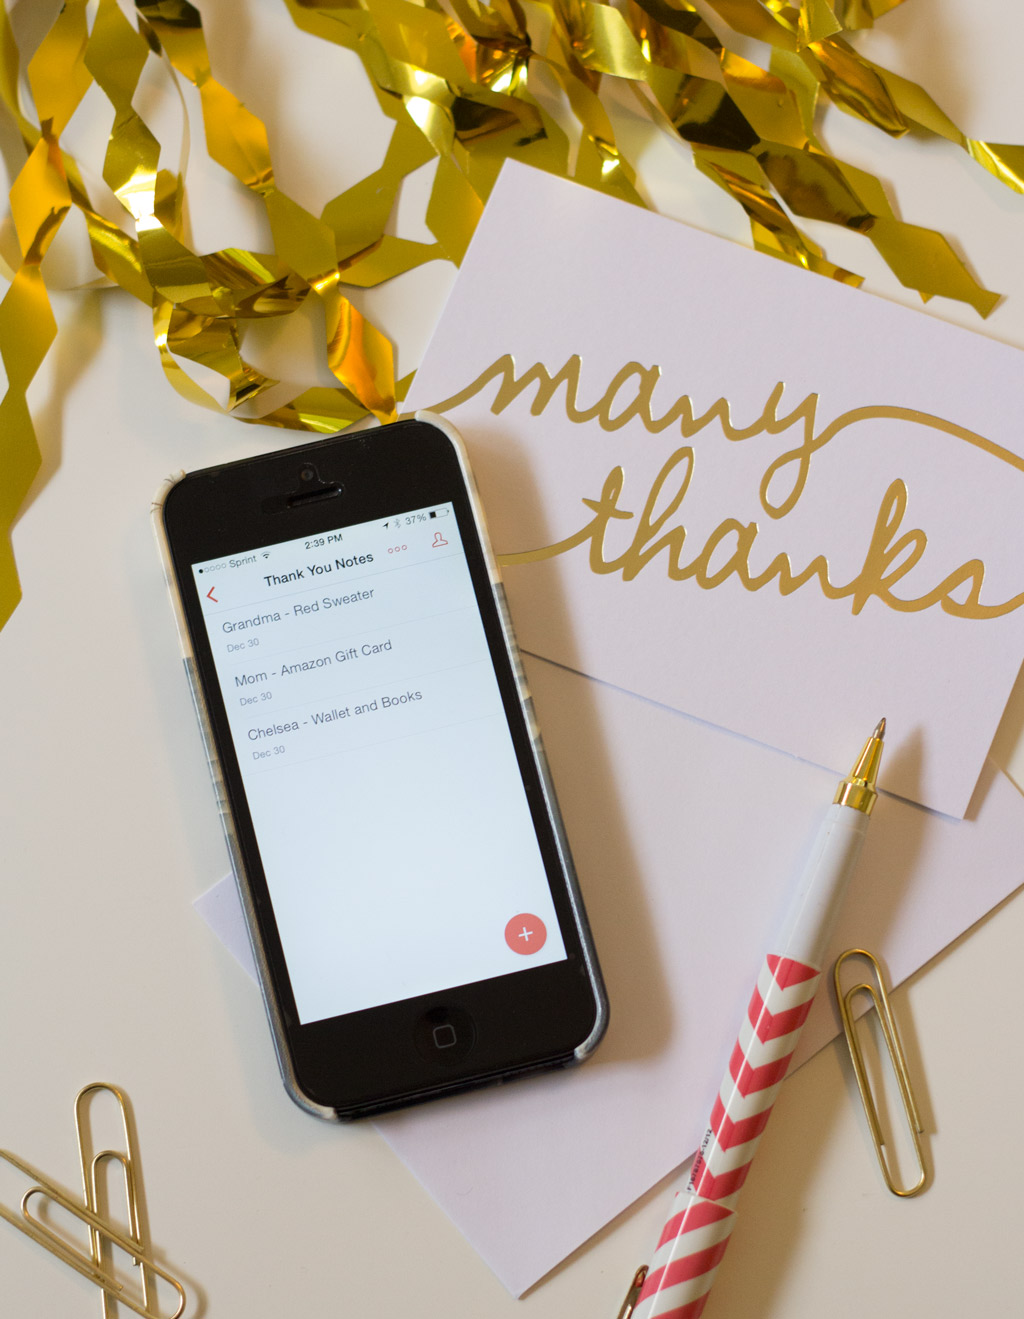 tech solutions for keeping track of thank you cards